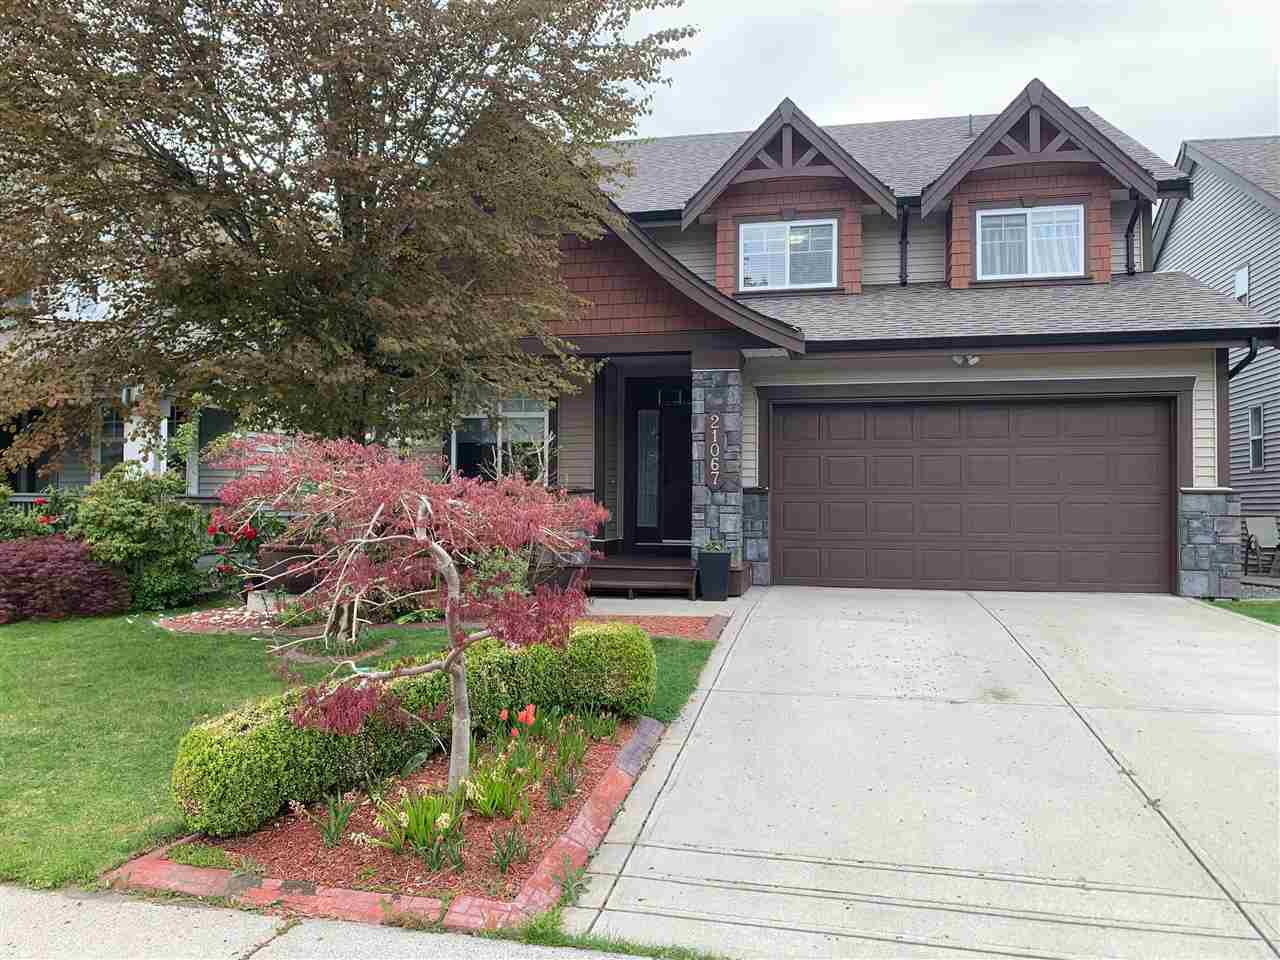 Main Photo: 21067 83A Avenue in Langley: Willoughby Heights House for sale : MLS®# R2459560